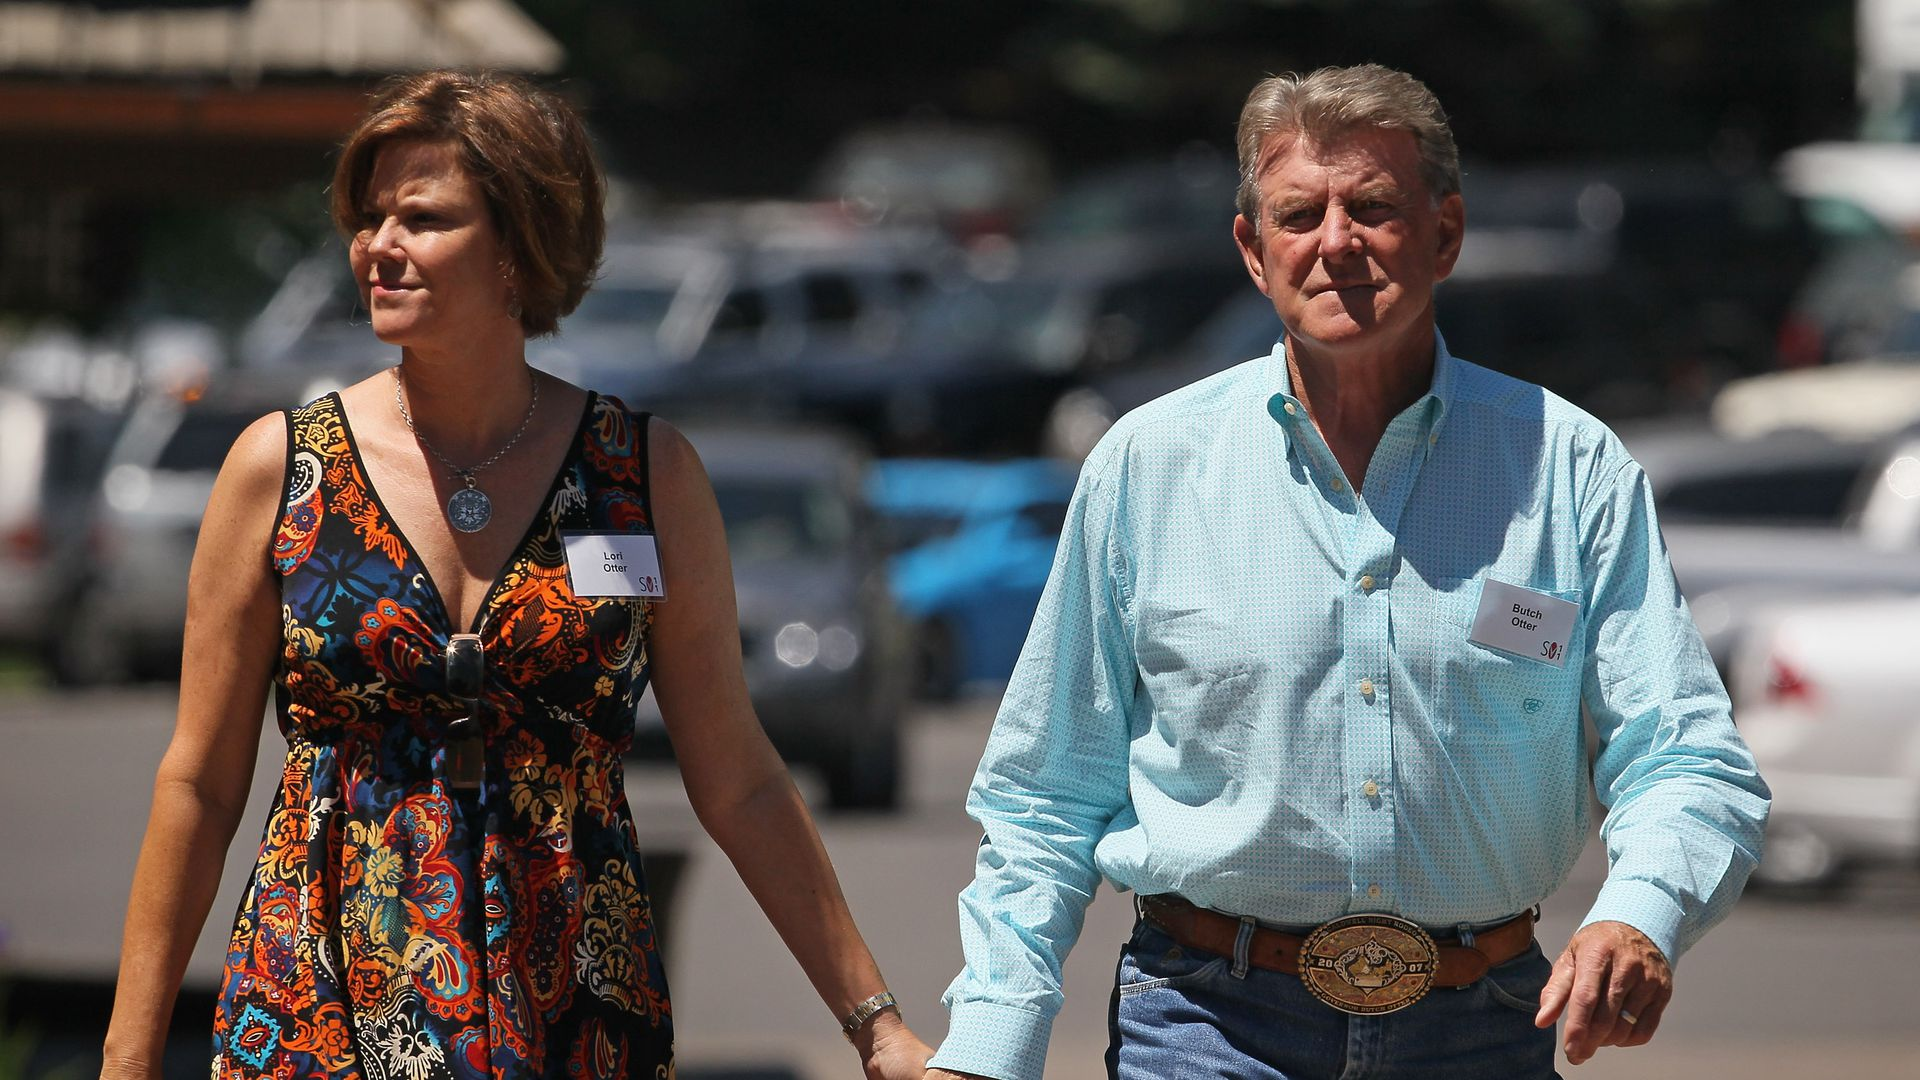 Idaho Gov. Butch Otter and his wife, Lori